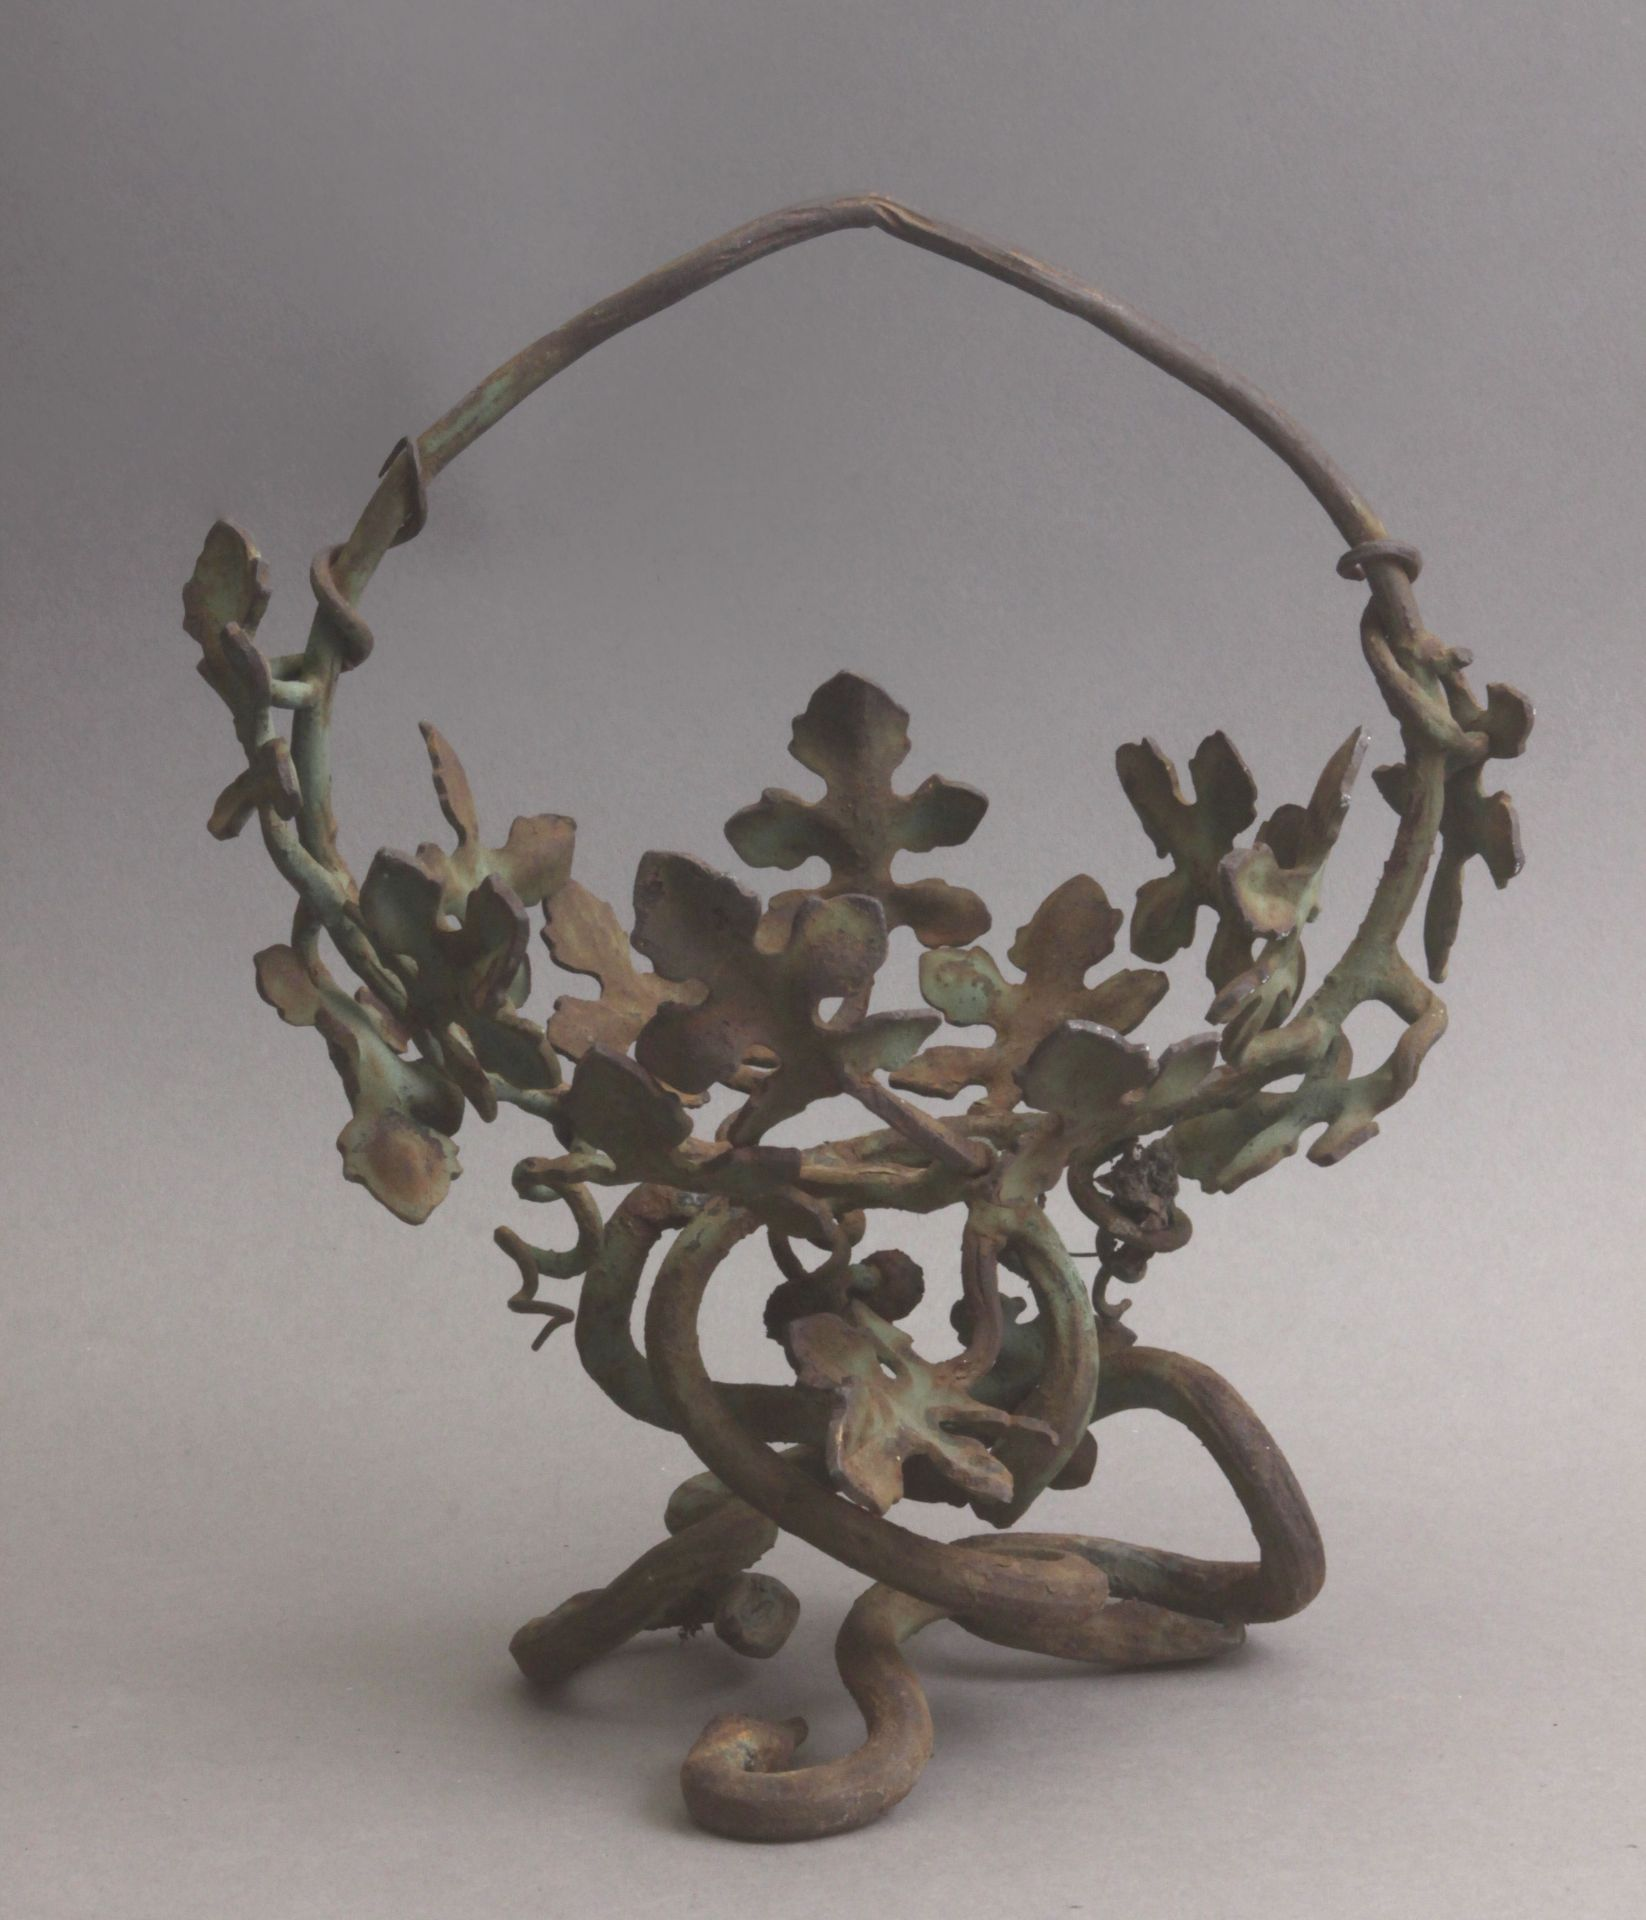 An Art Nouveau wrought iron jardiniere in the style of Manuel Ballarin in 1900